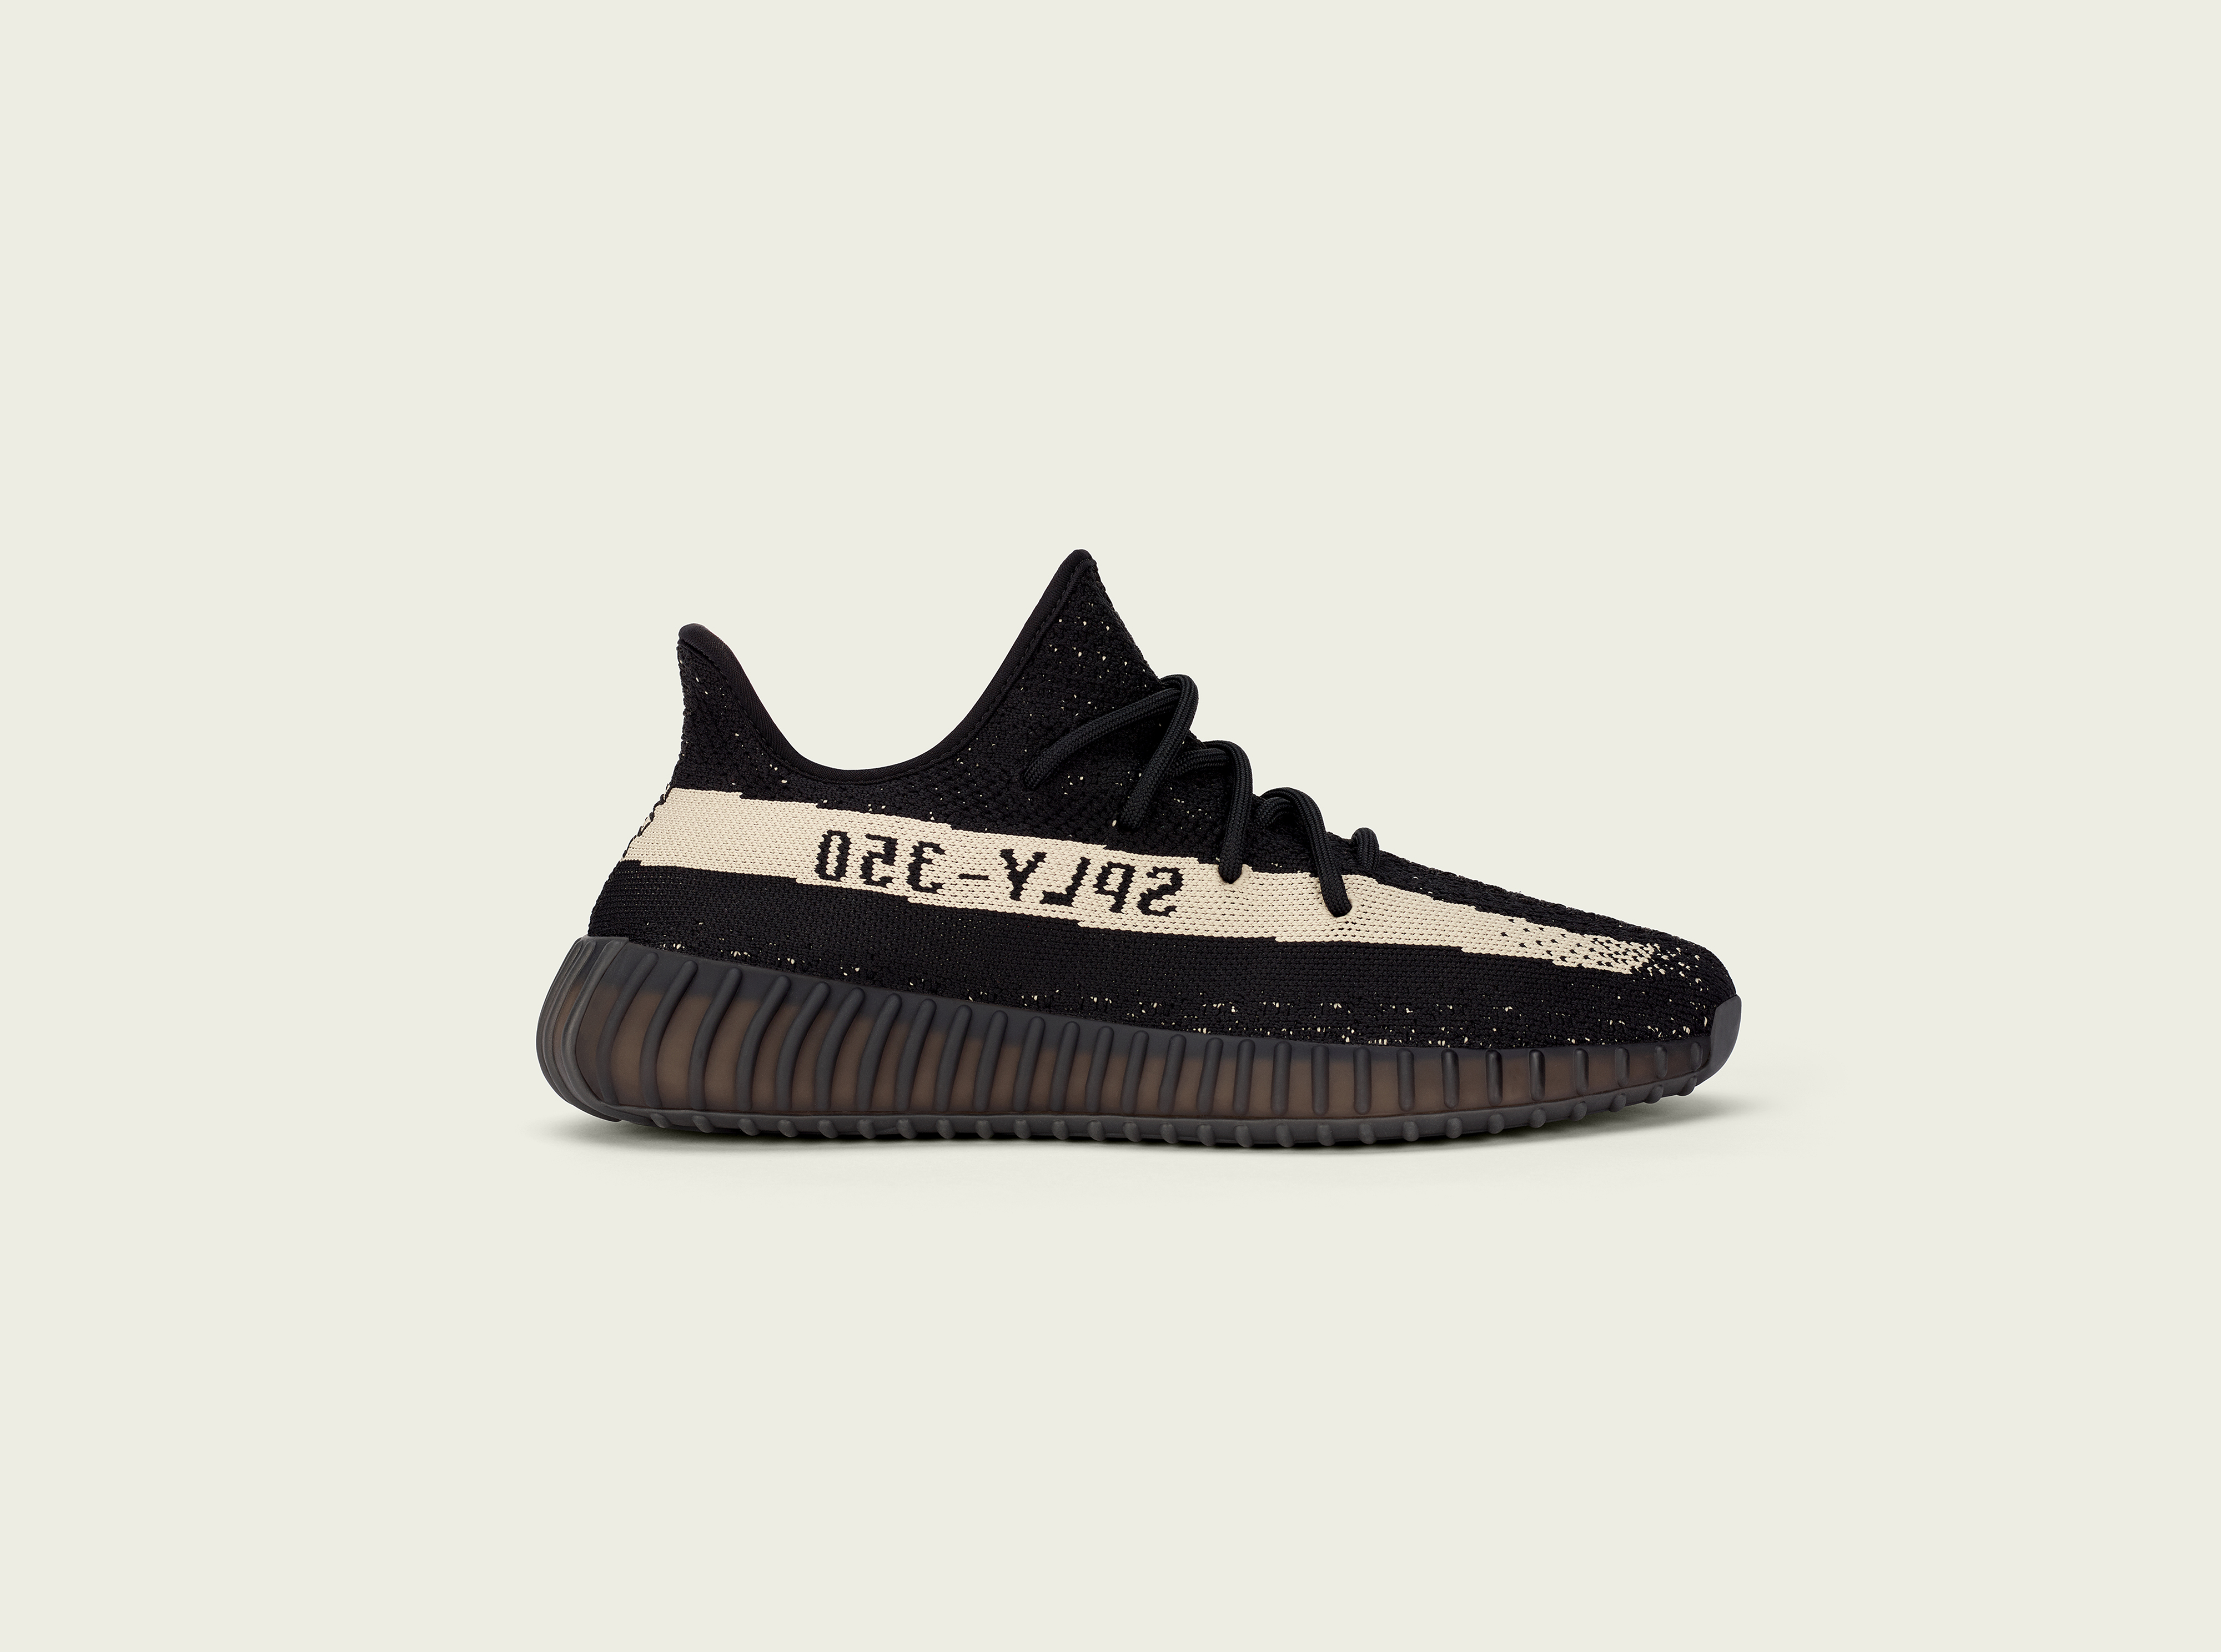 a1f20bbc19eff KANYE WEST and adidas Originals release the YEEZY BOOST 350 V2 Core ...